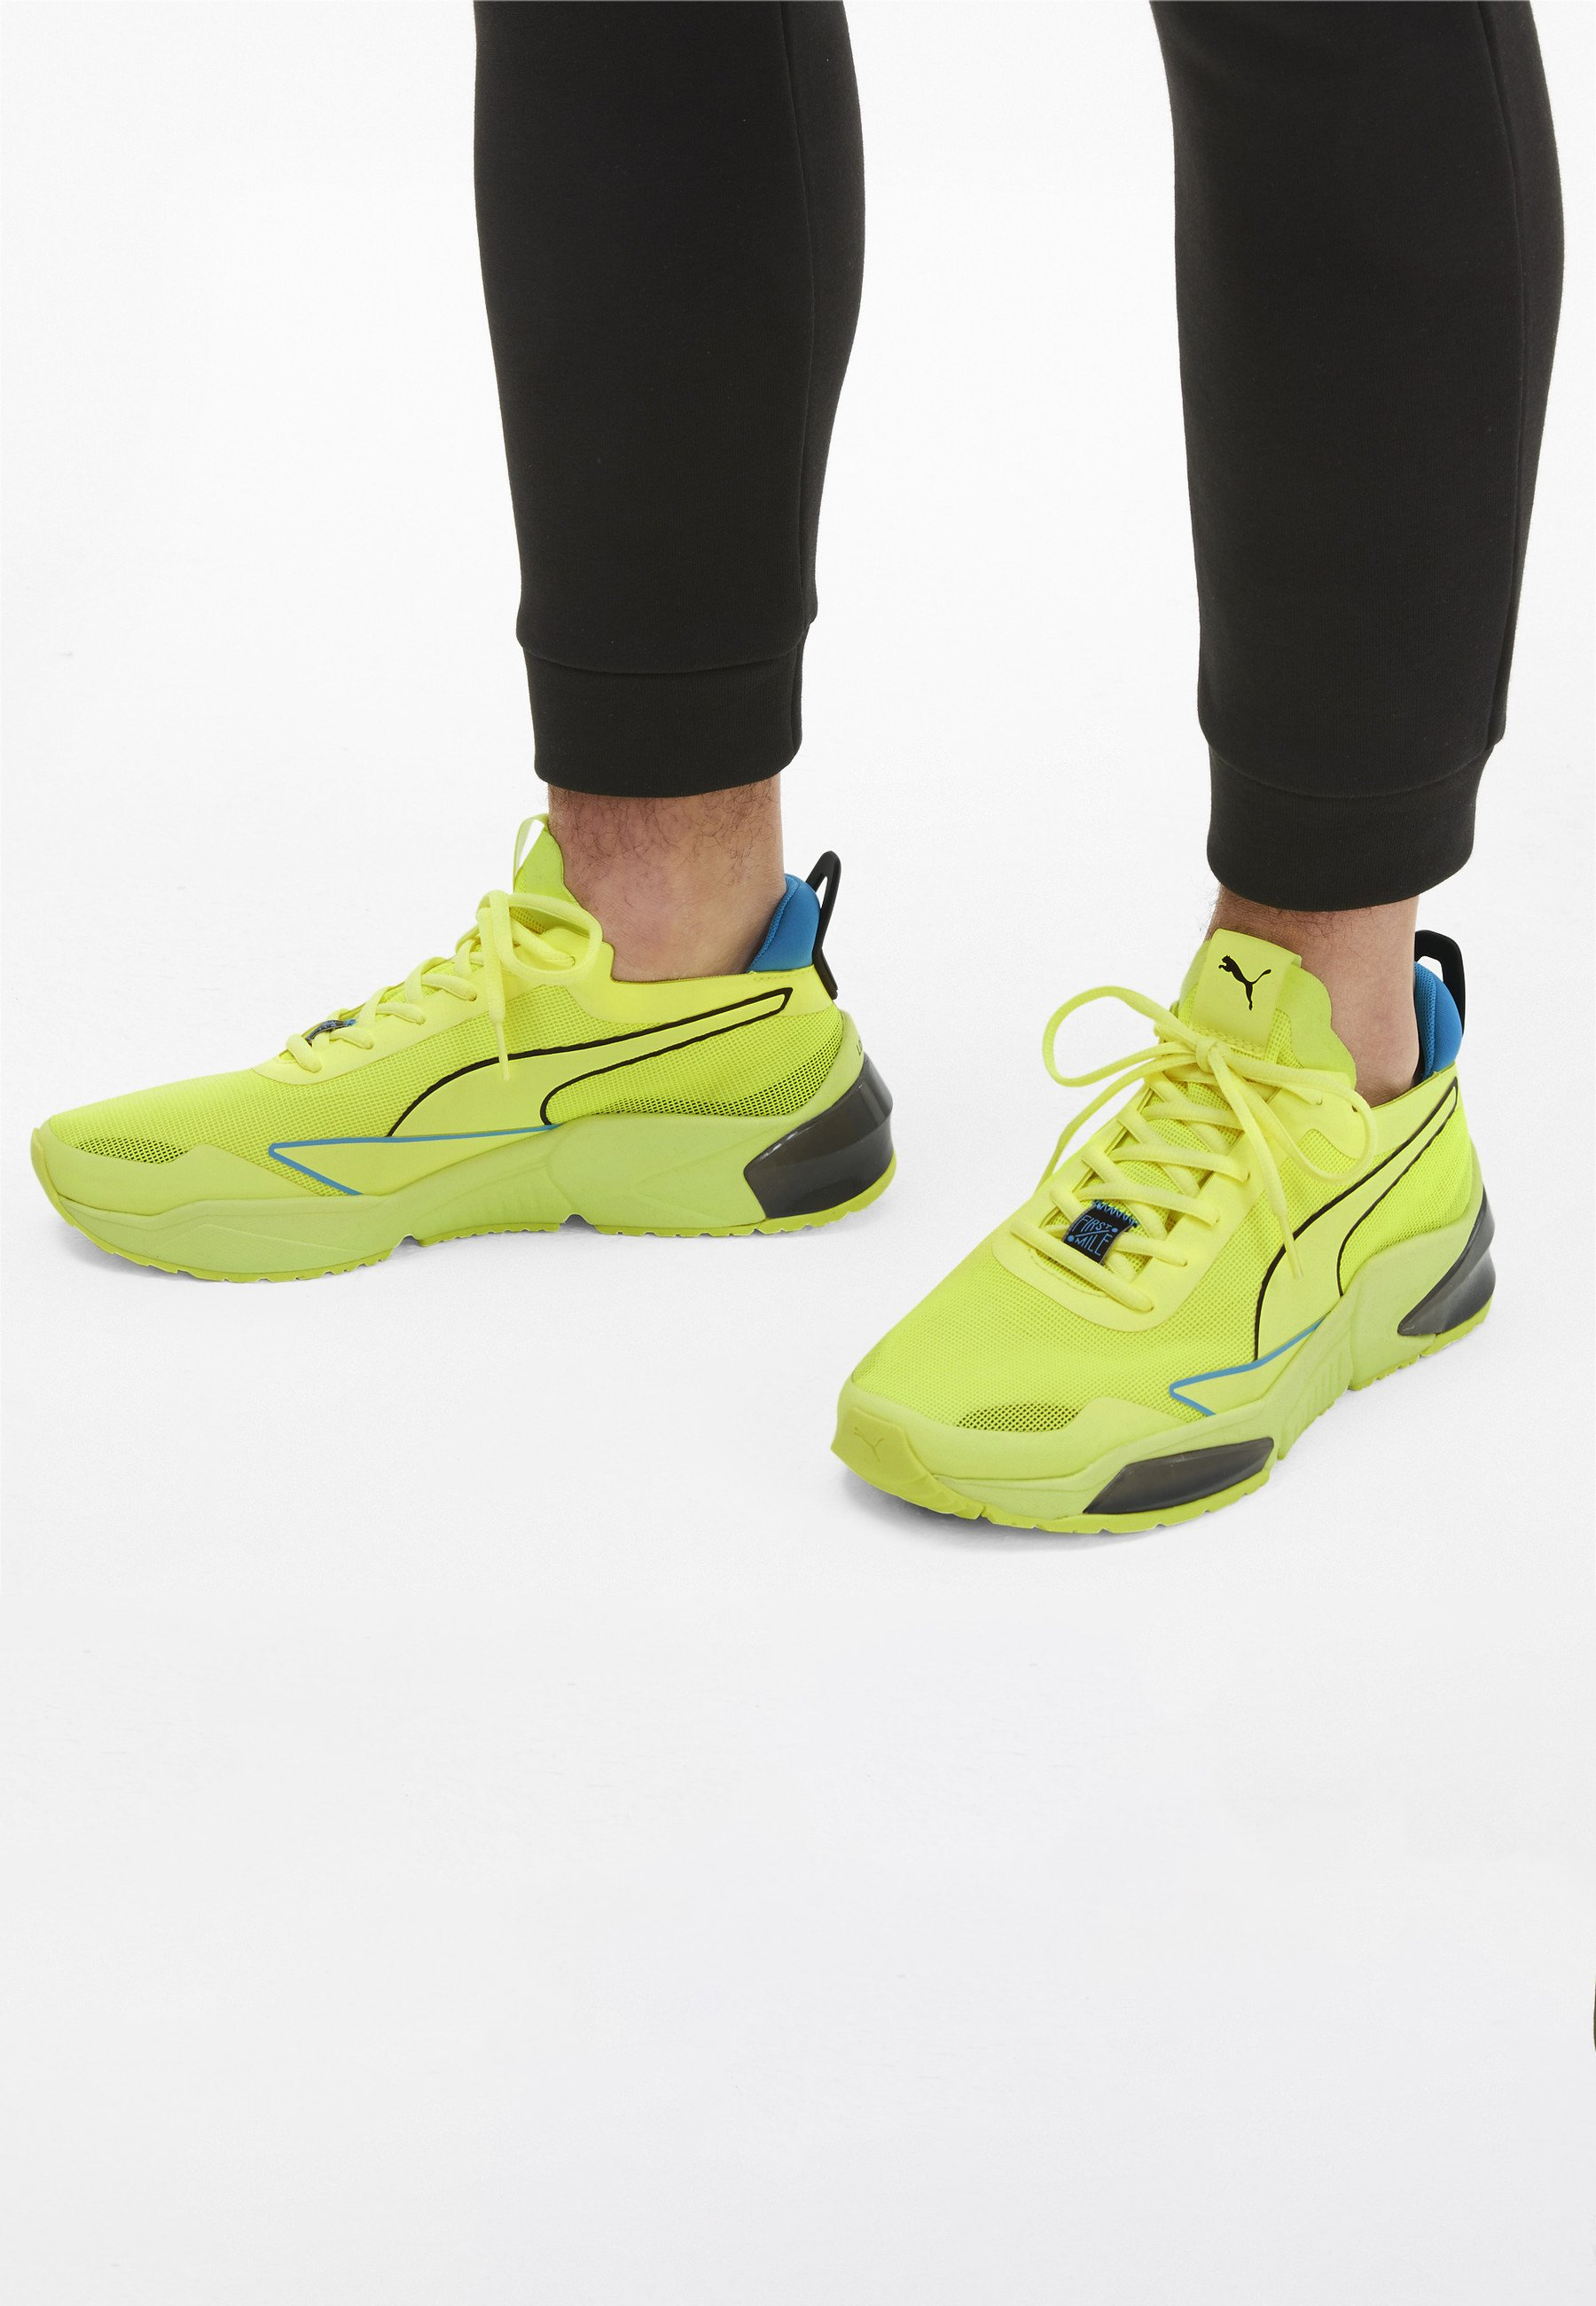 Puma Chaussures de running stables - fizzy yellow-puma black-nrgy ...